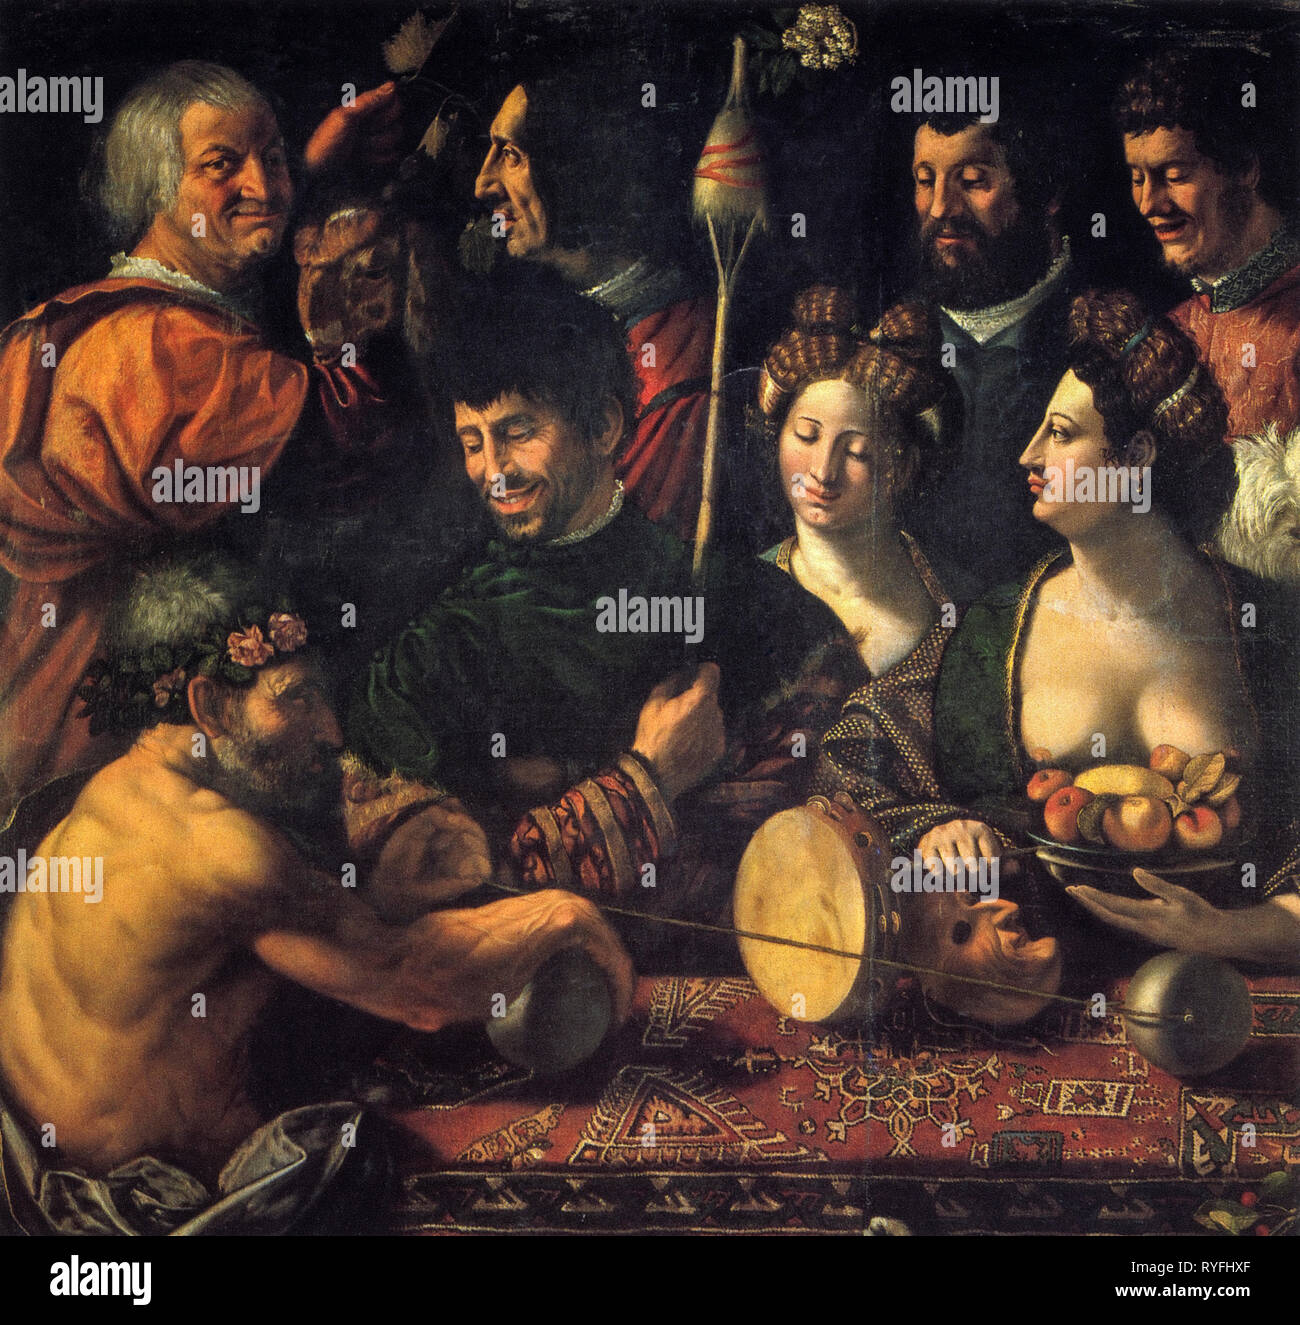 Witchcraft (Allegory of Hercules) by Dosso Dossi 1535 - Stock Image